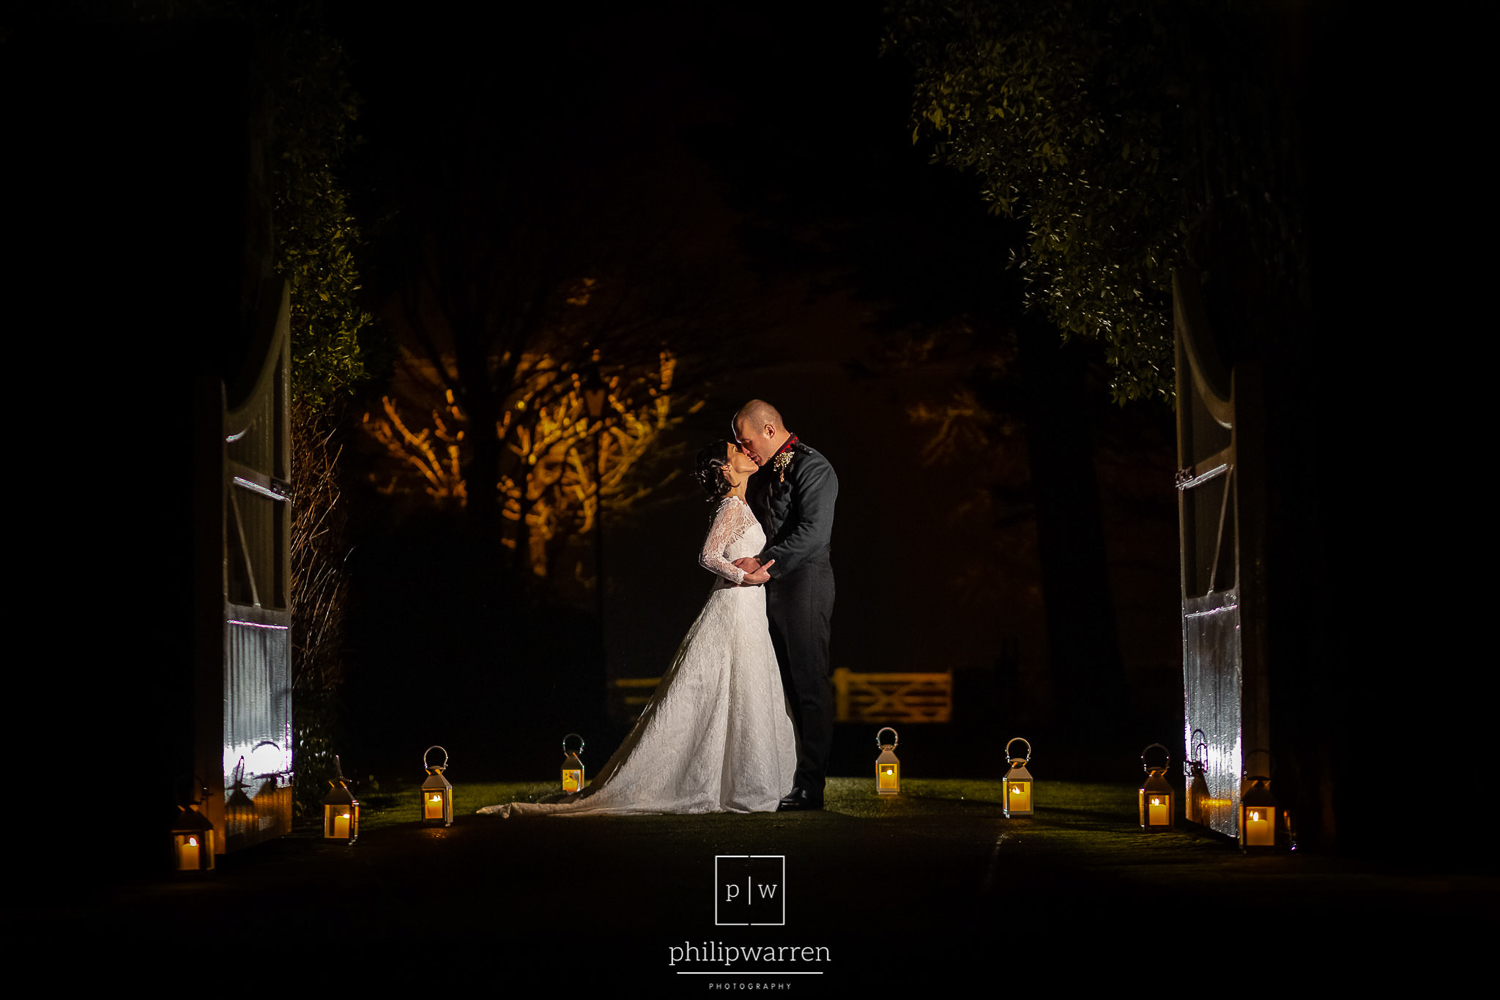 night wedding photo at fonmon castle grounds